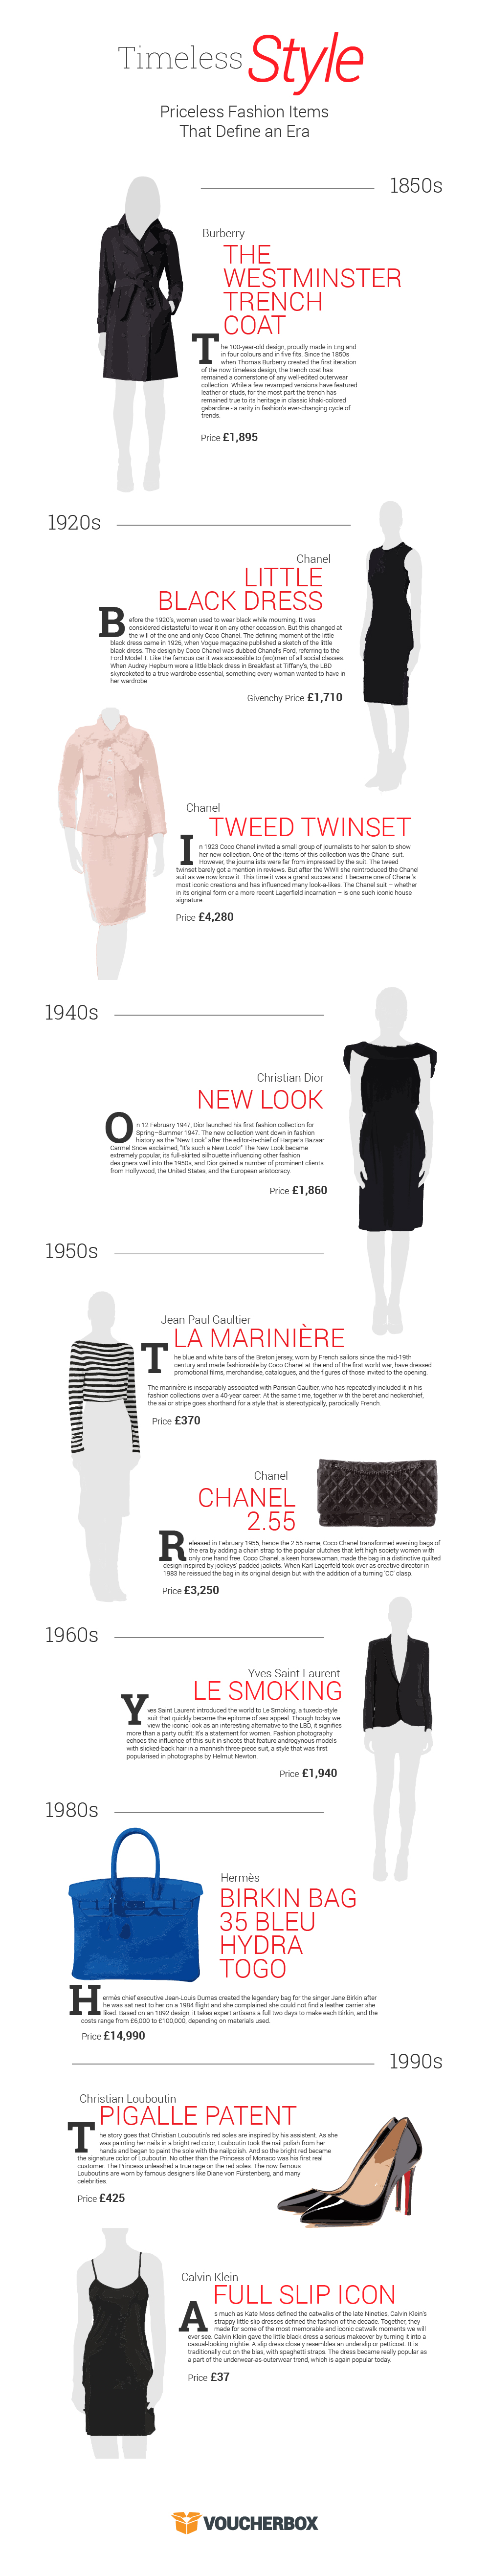 Women 90 Years Since the LBD... here are 20 fashion classics that followed